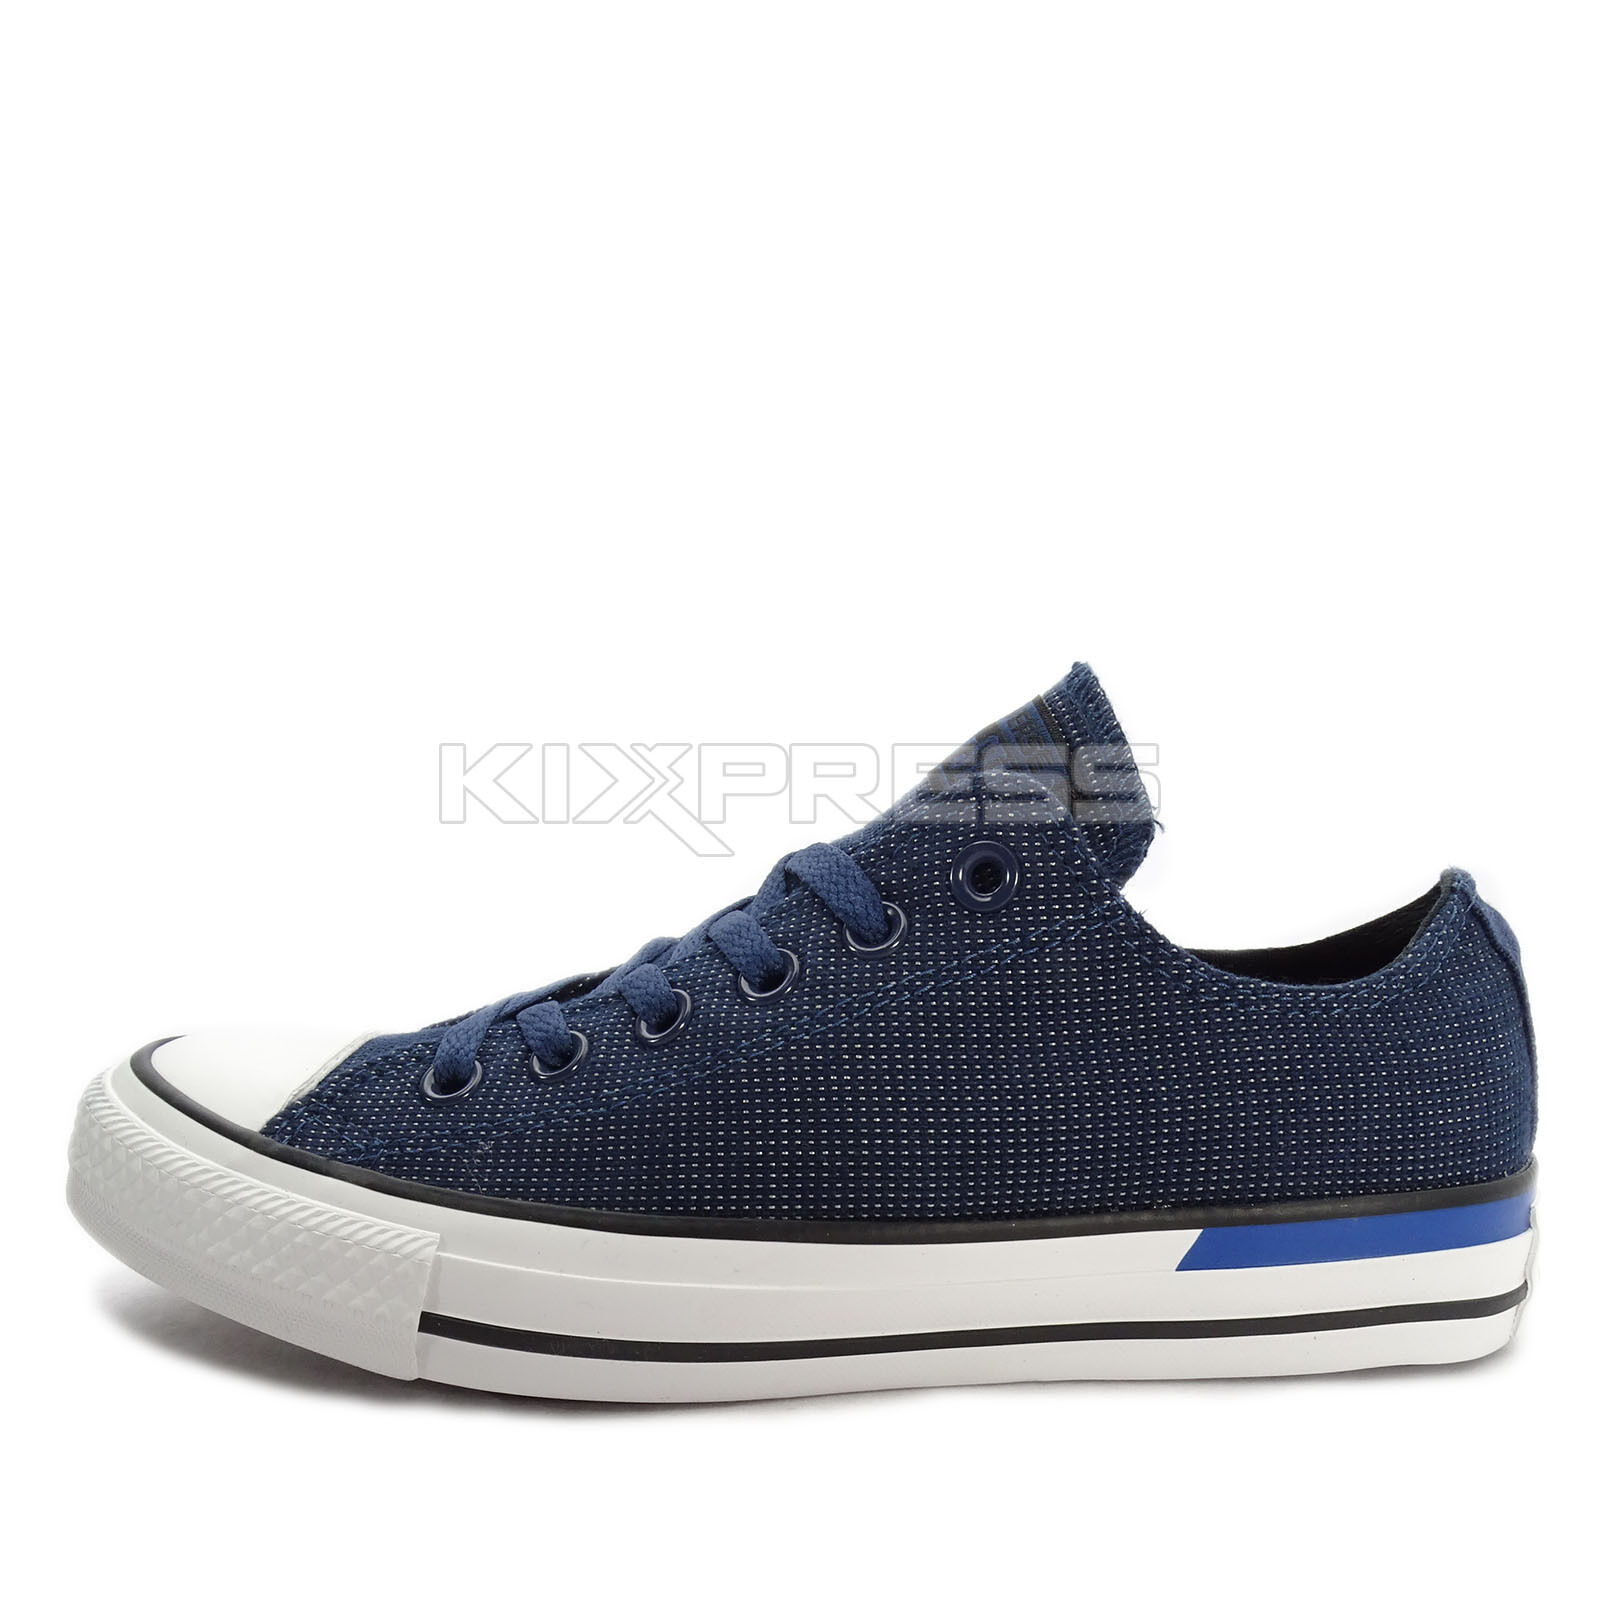 Converse Chuck Taylor All Star [149539C] Casual Navy/White